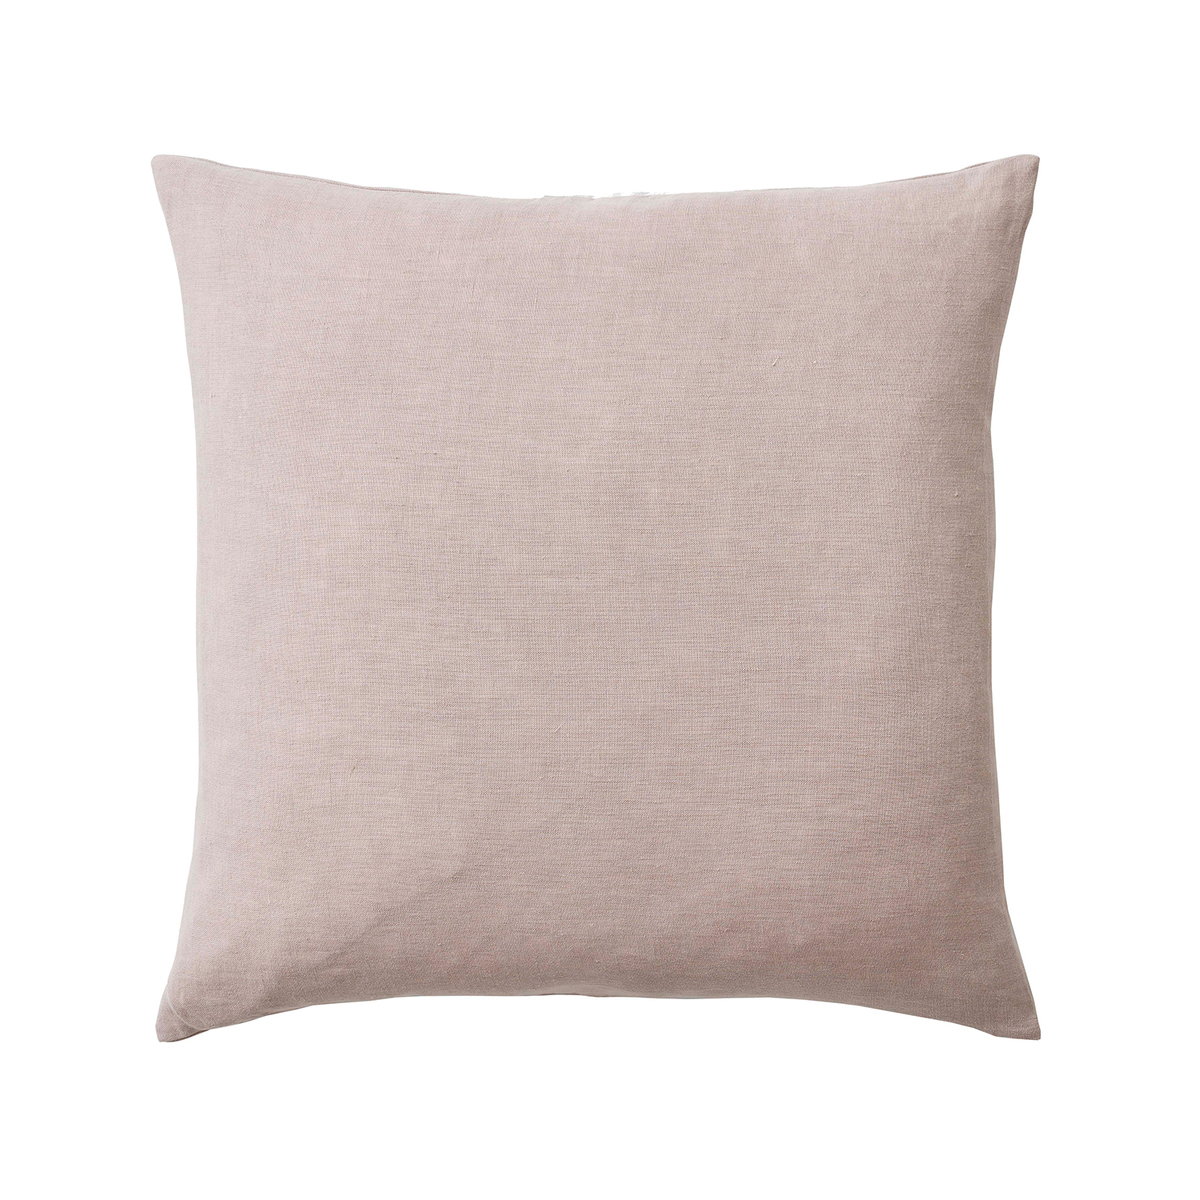 &Tradition Collect Linen SC28 cushion, 50 x 50 cm, powder from &Tradition